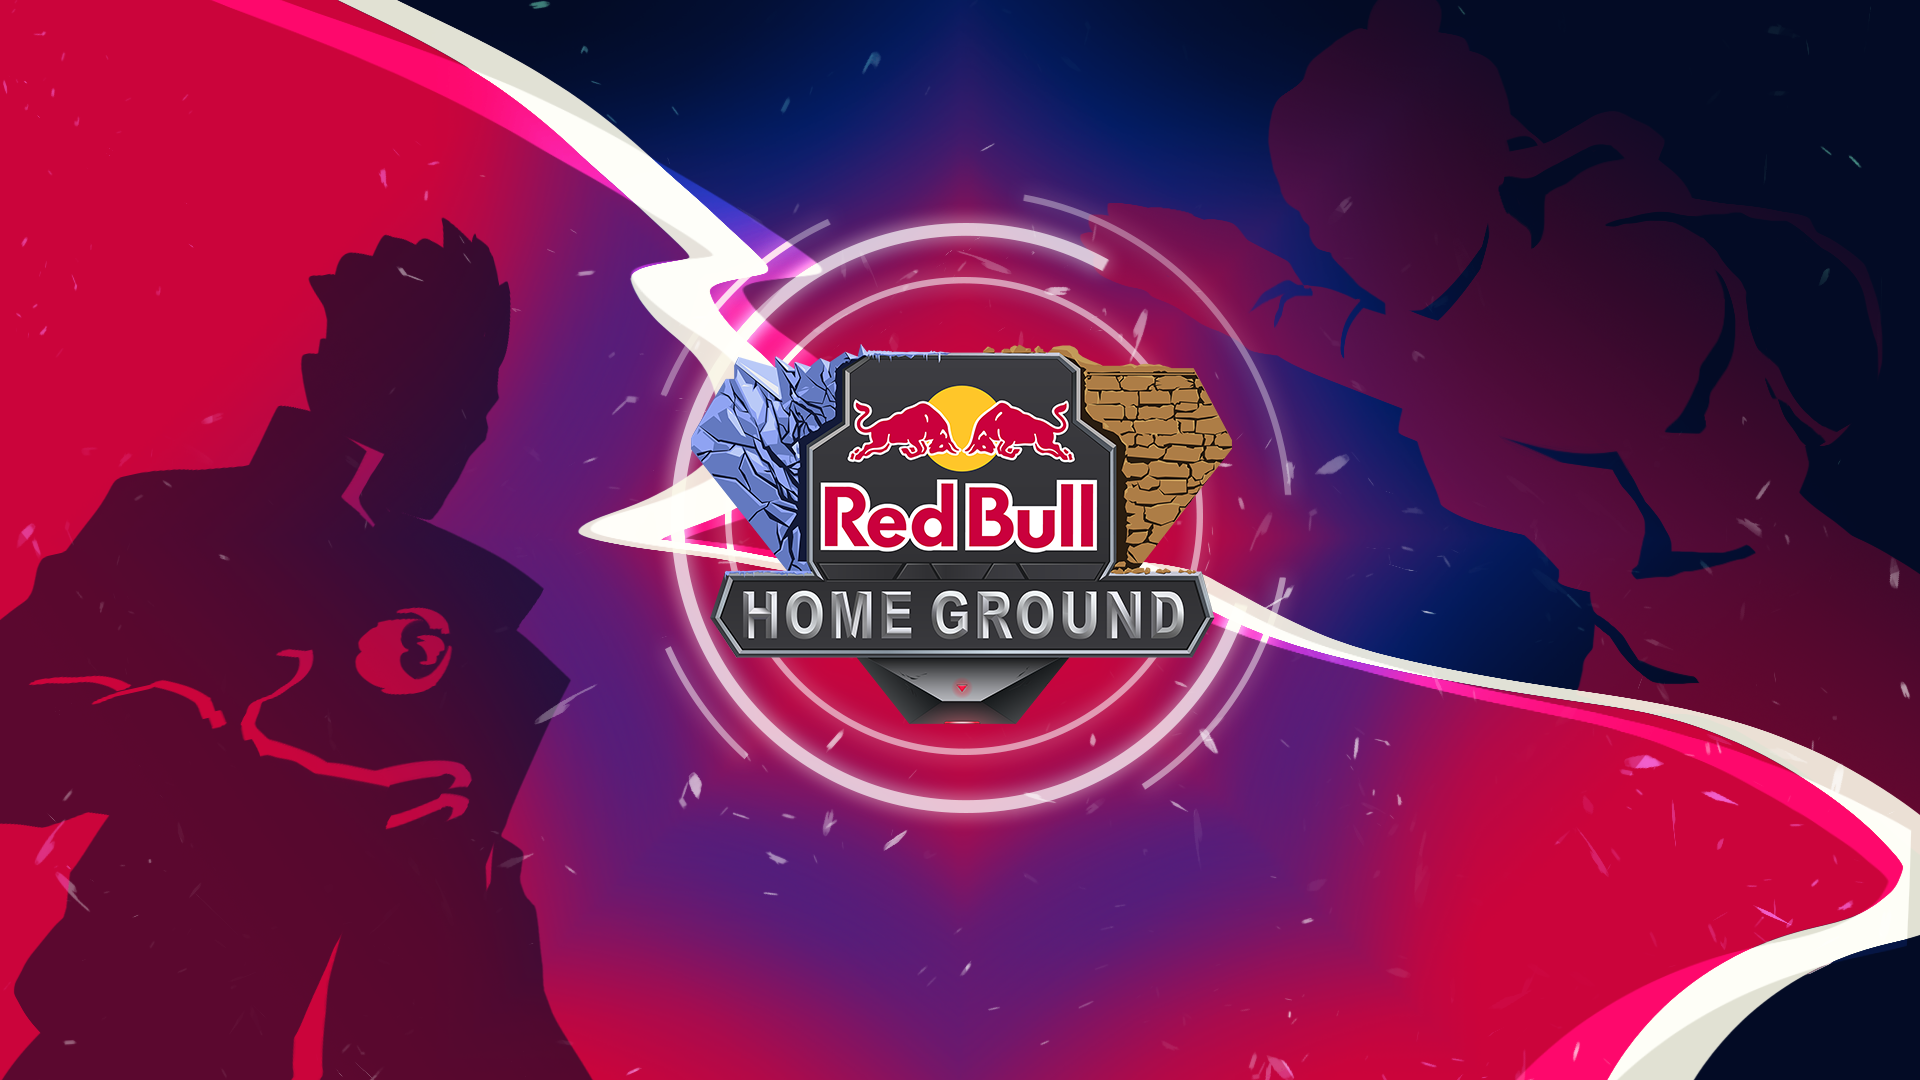 Red Bull Home Ground – NIP Outlast Futbolist, G2 deals with FrenzyGoKill